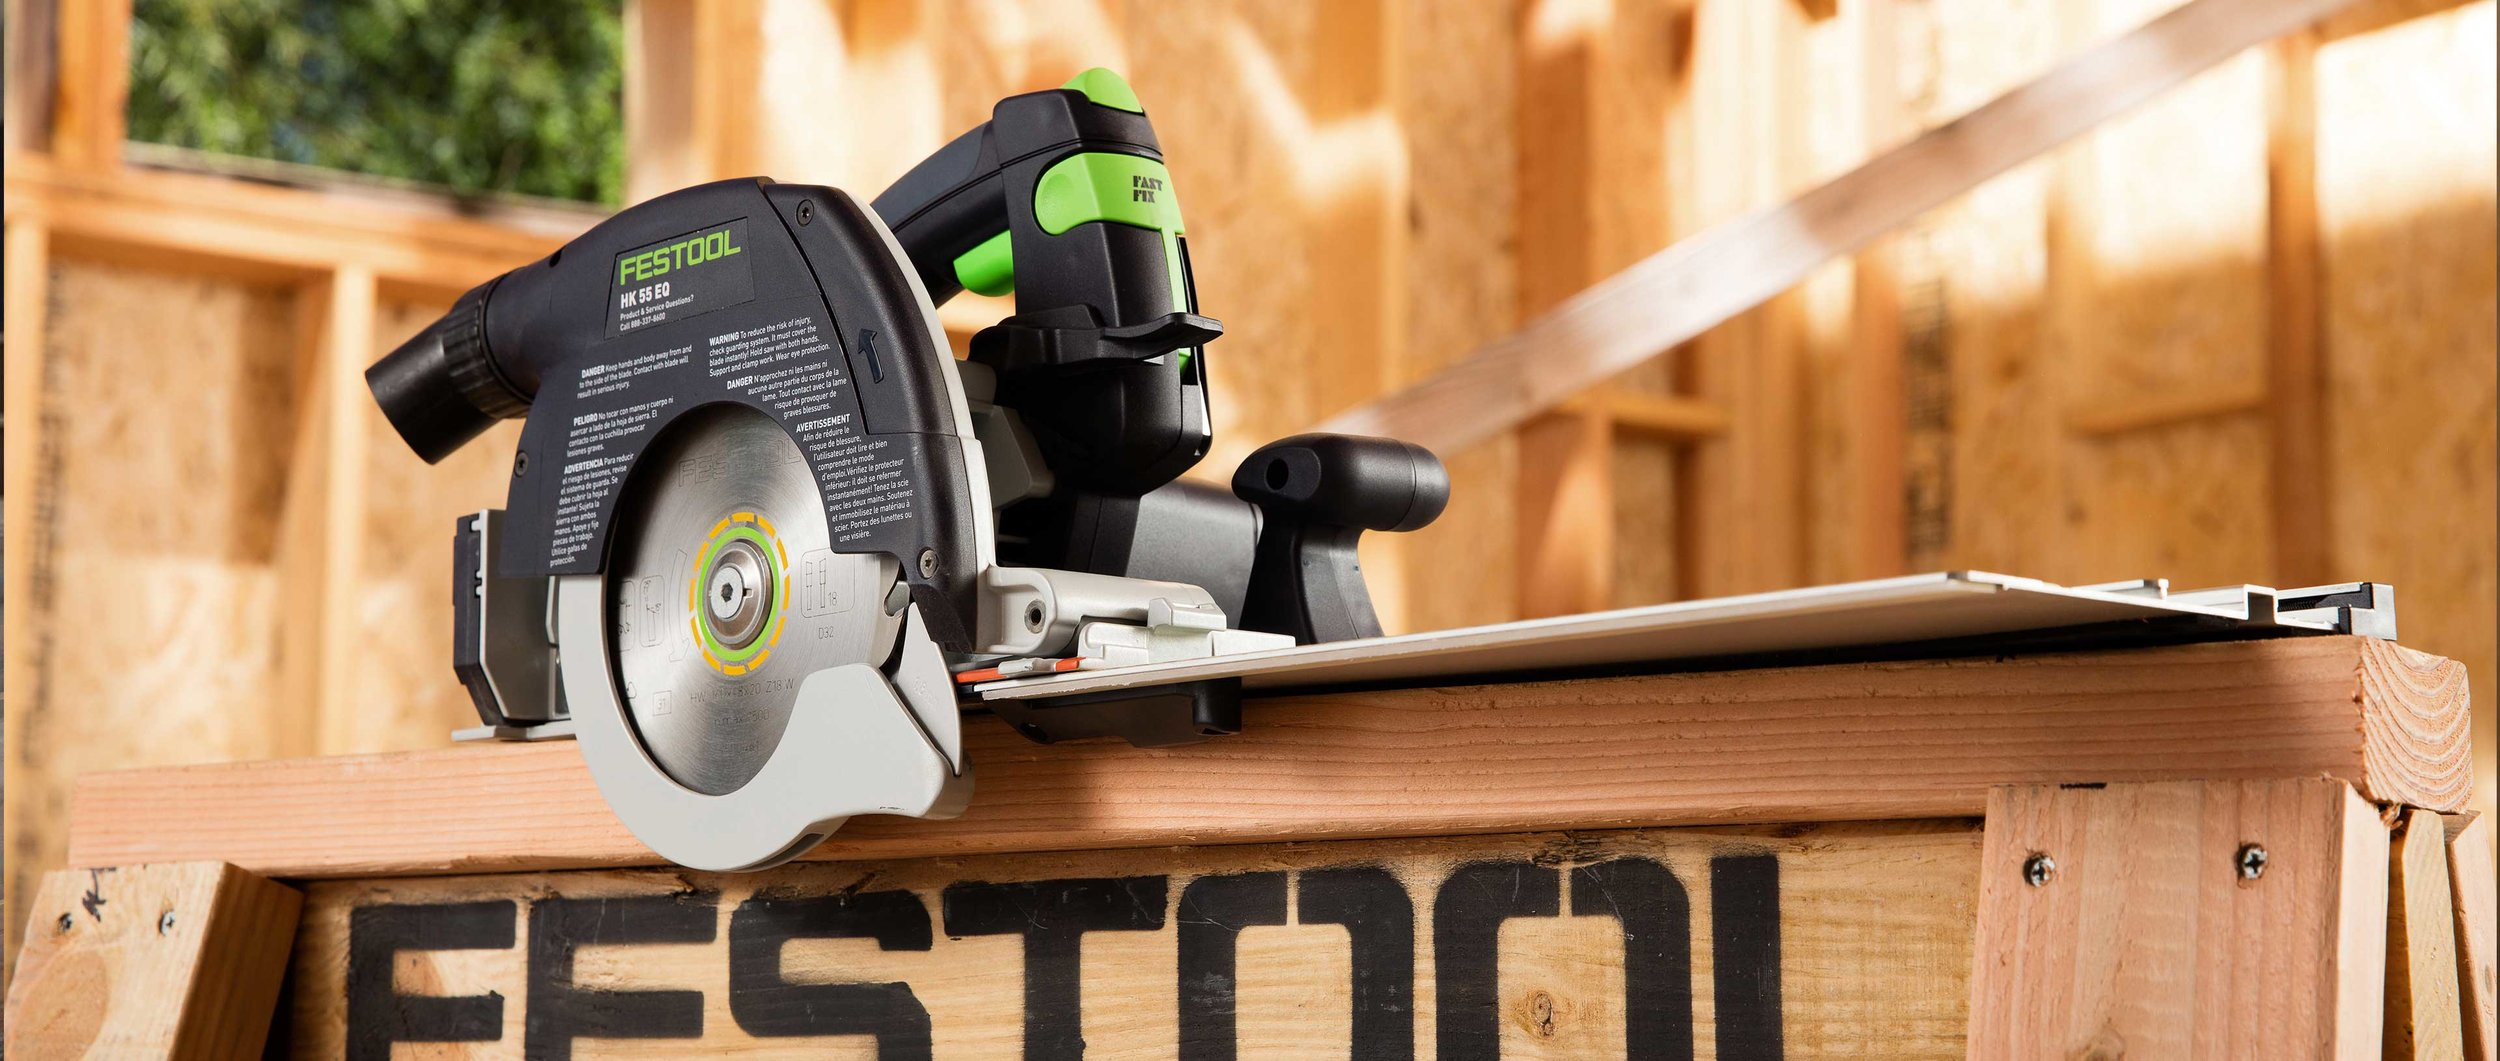 WE ARE AN AUTHORIZED FESTOOL DEALER